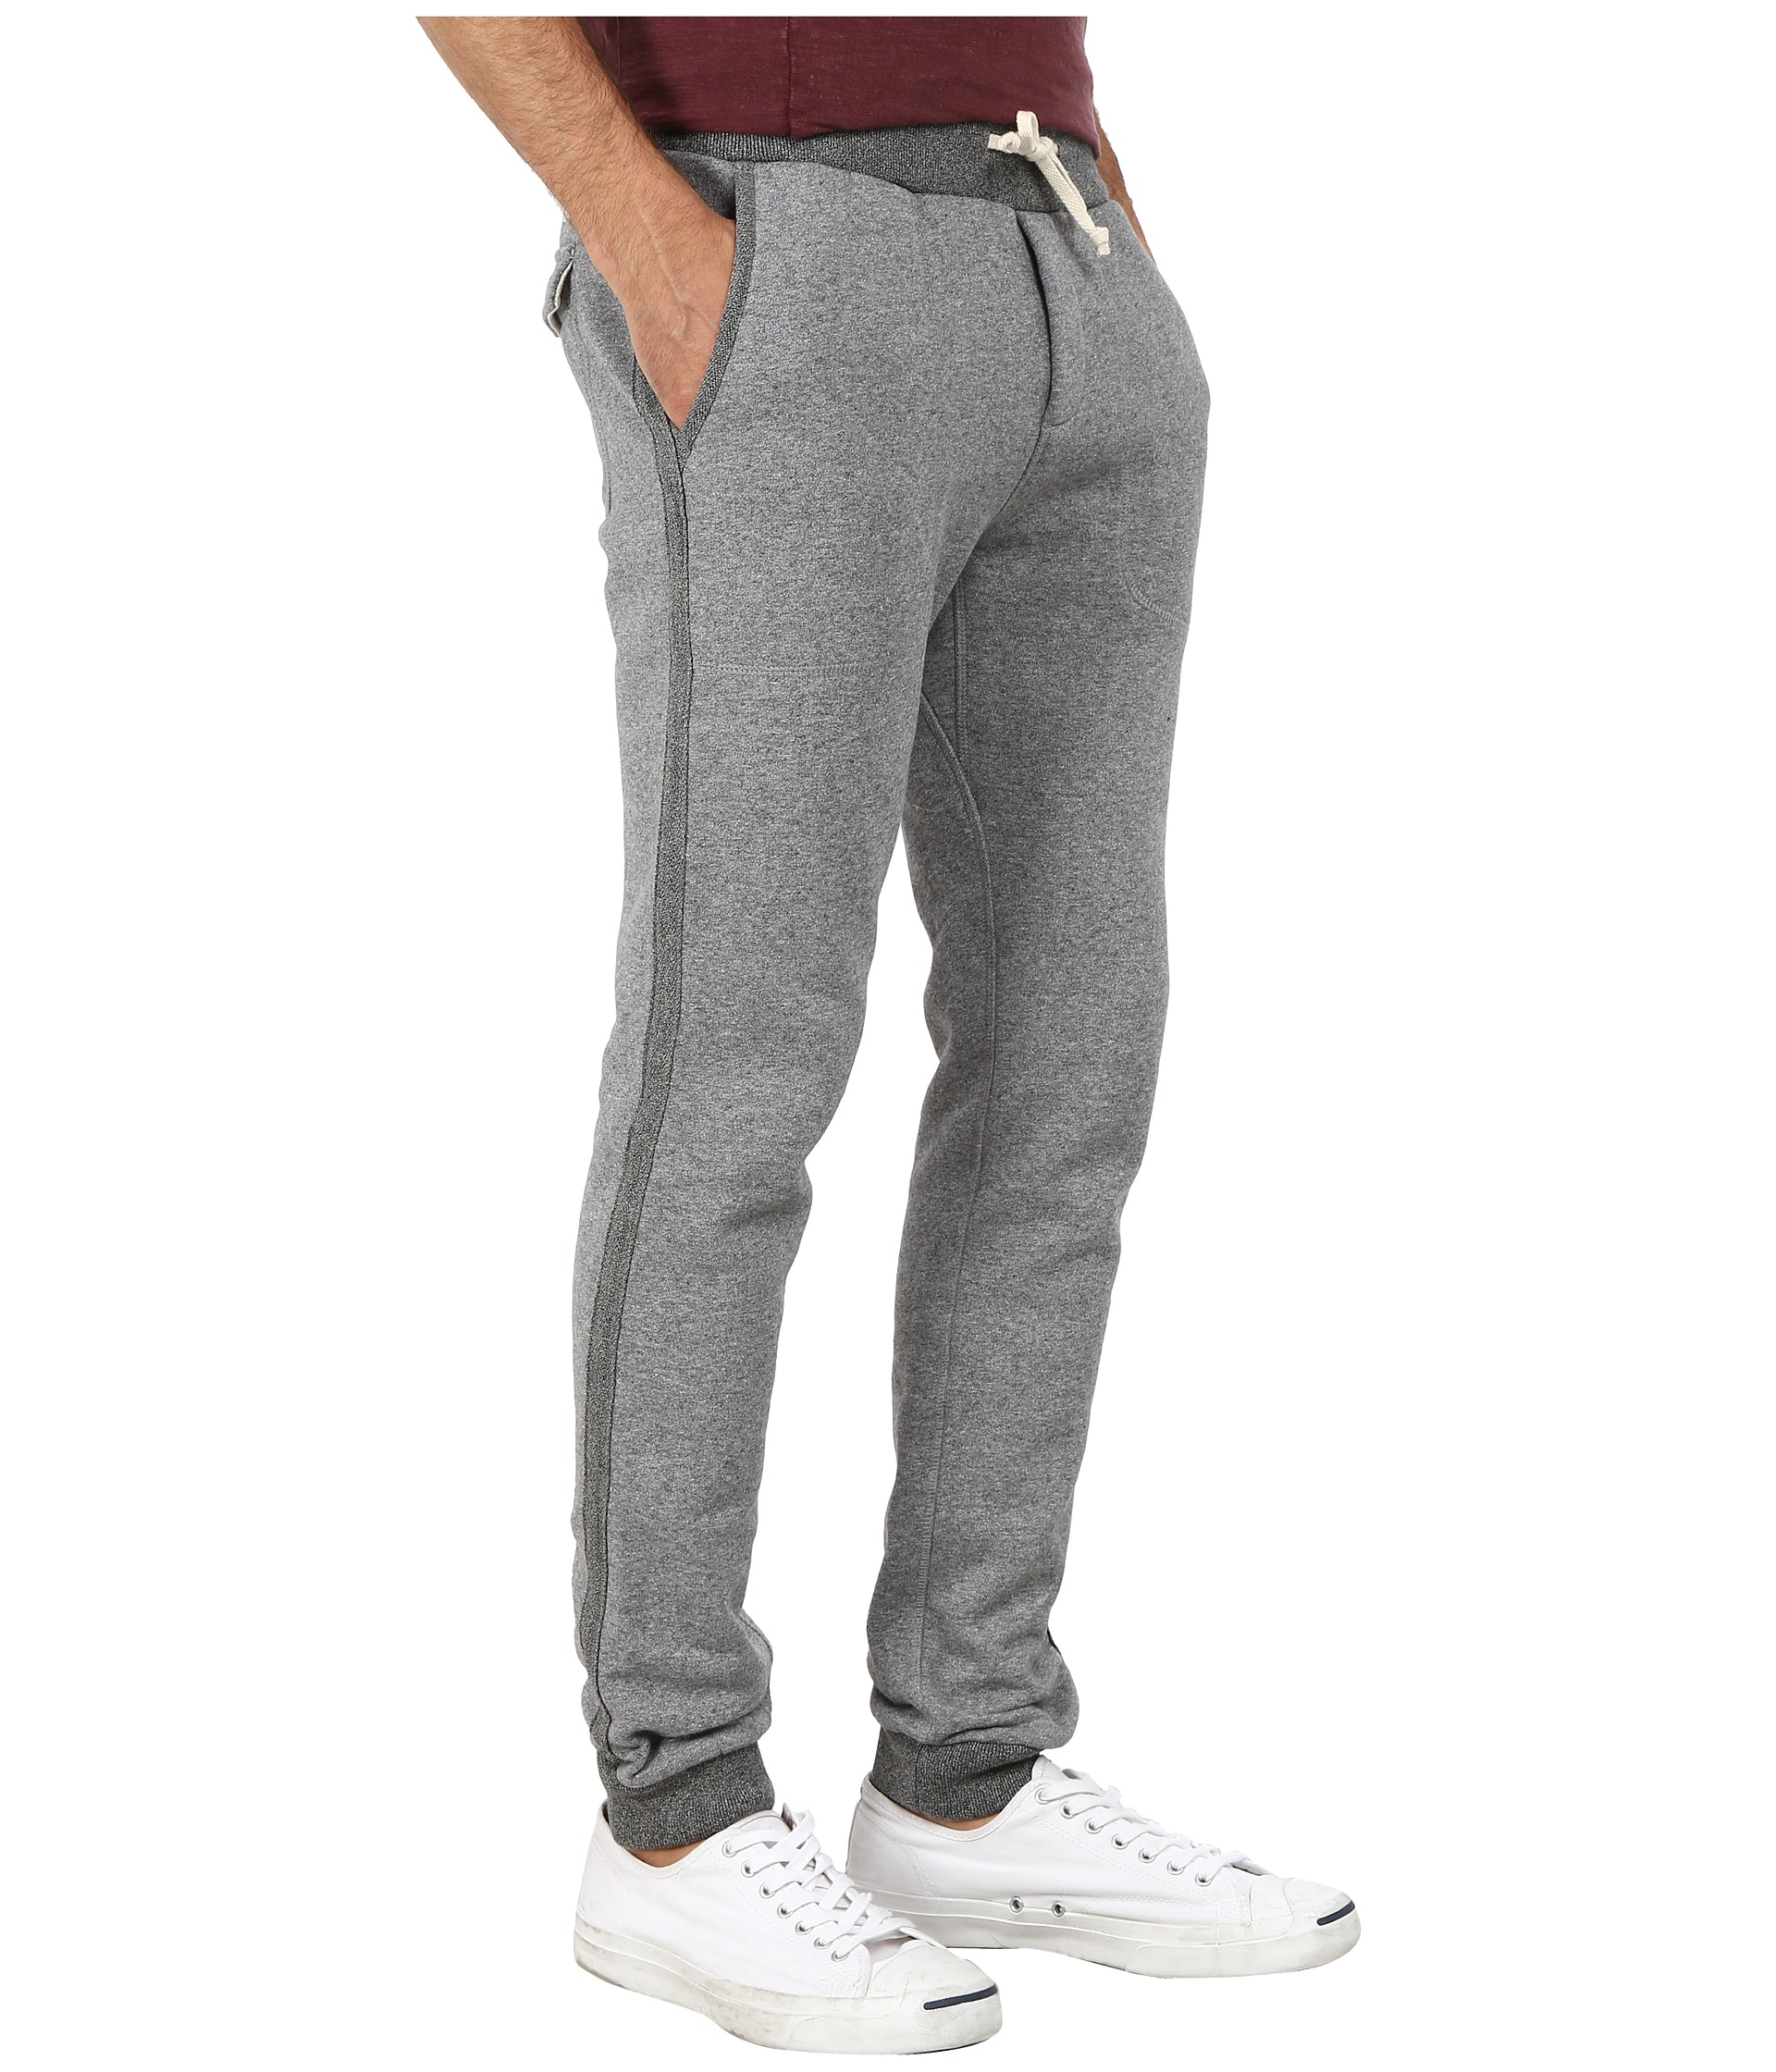 dacf23d60 Scotch & Soda Home Alone Slim Tapered Sweatpants in Gray for Men - Lyst